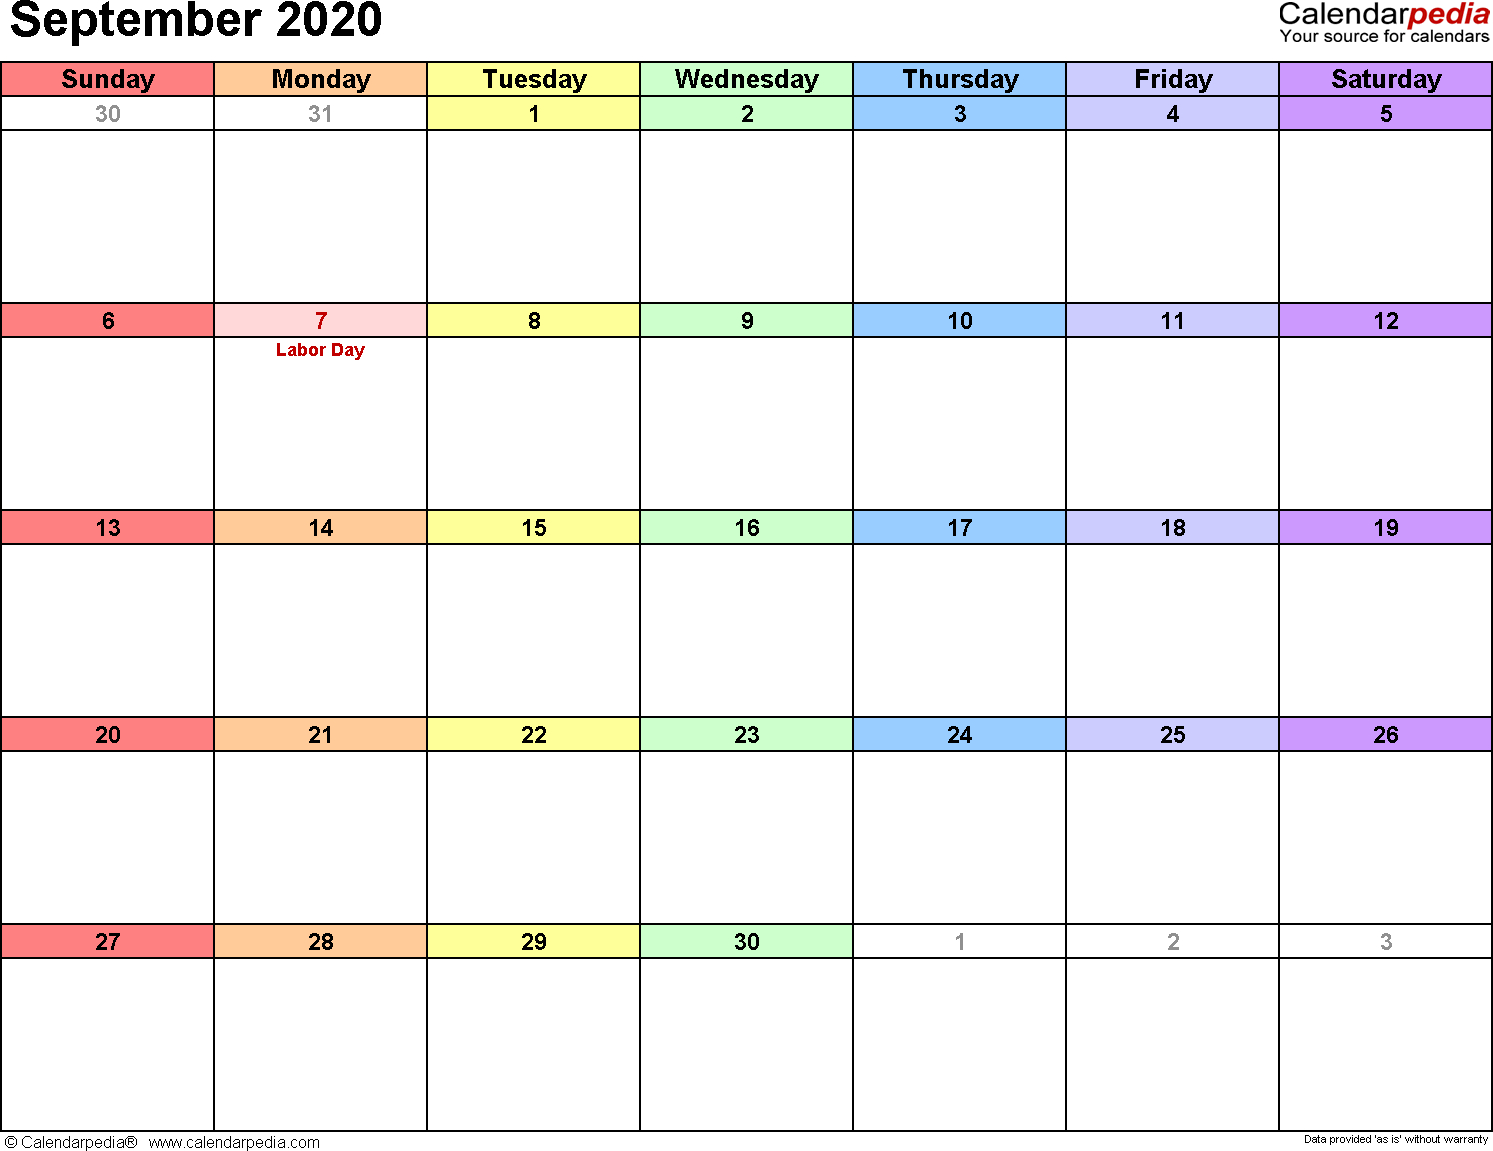 September 2020 Calendars For Word, Excel & Pdf